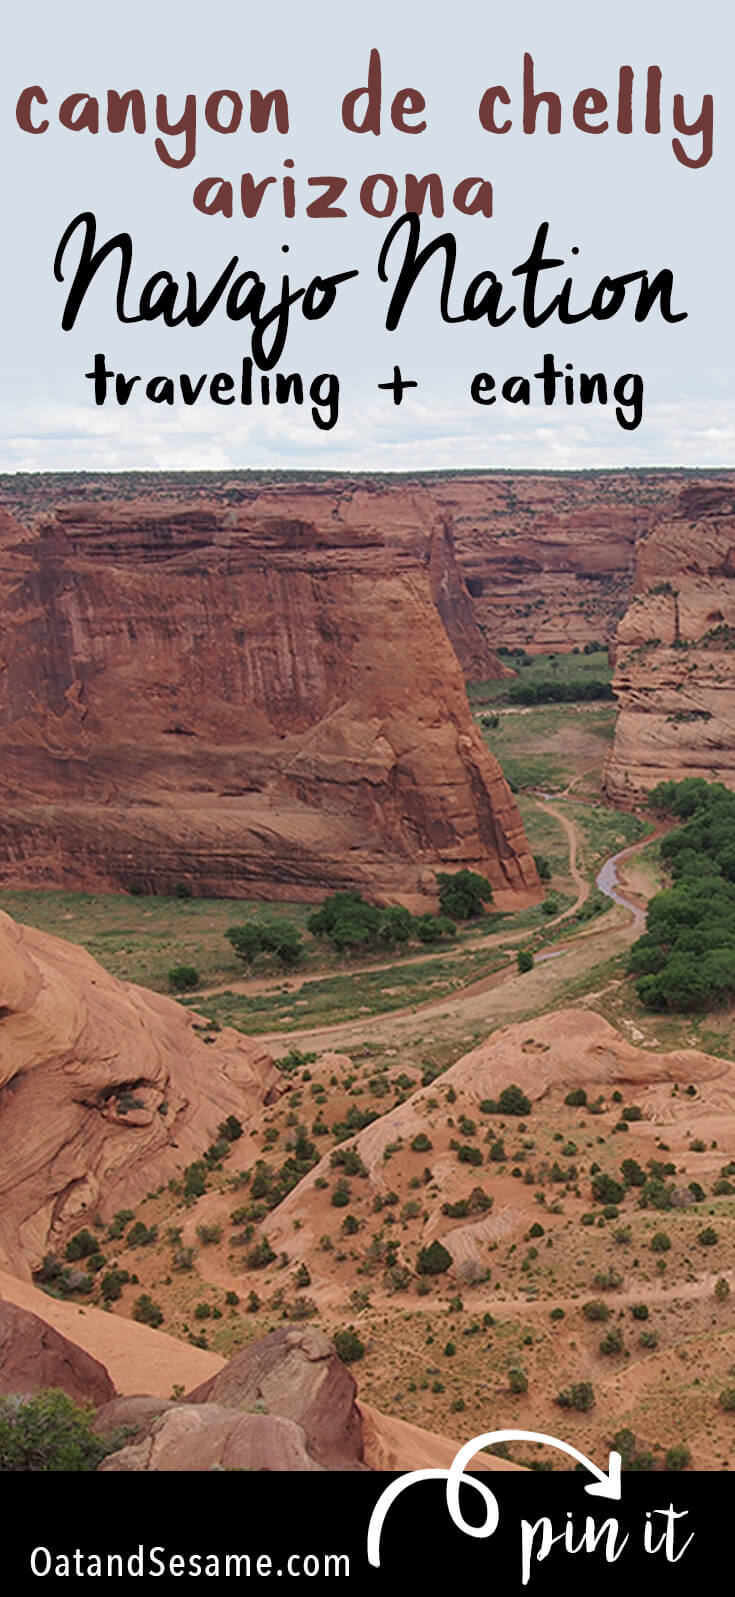 Canyon de Chelly AZ